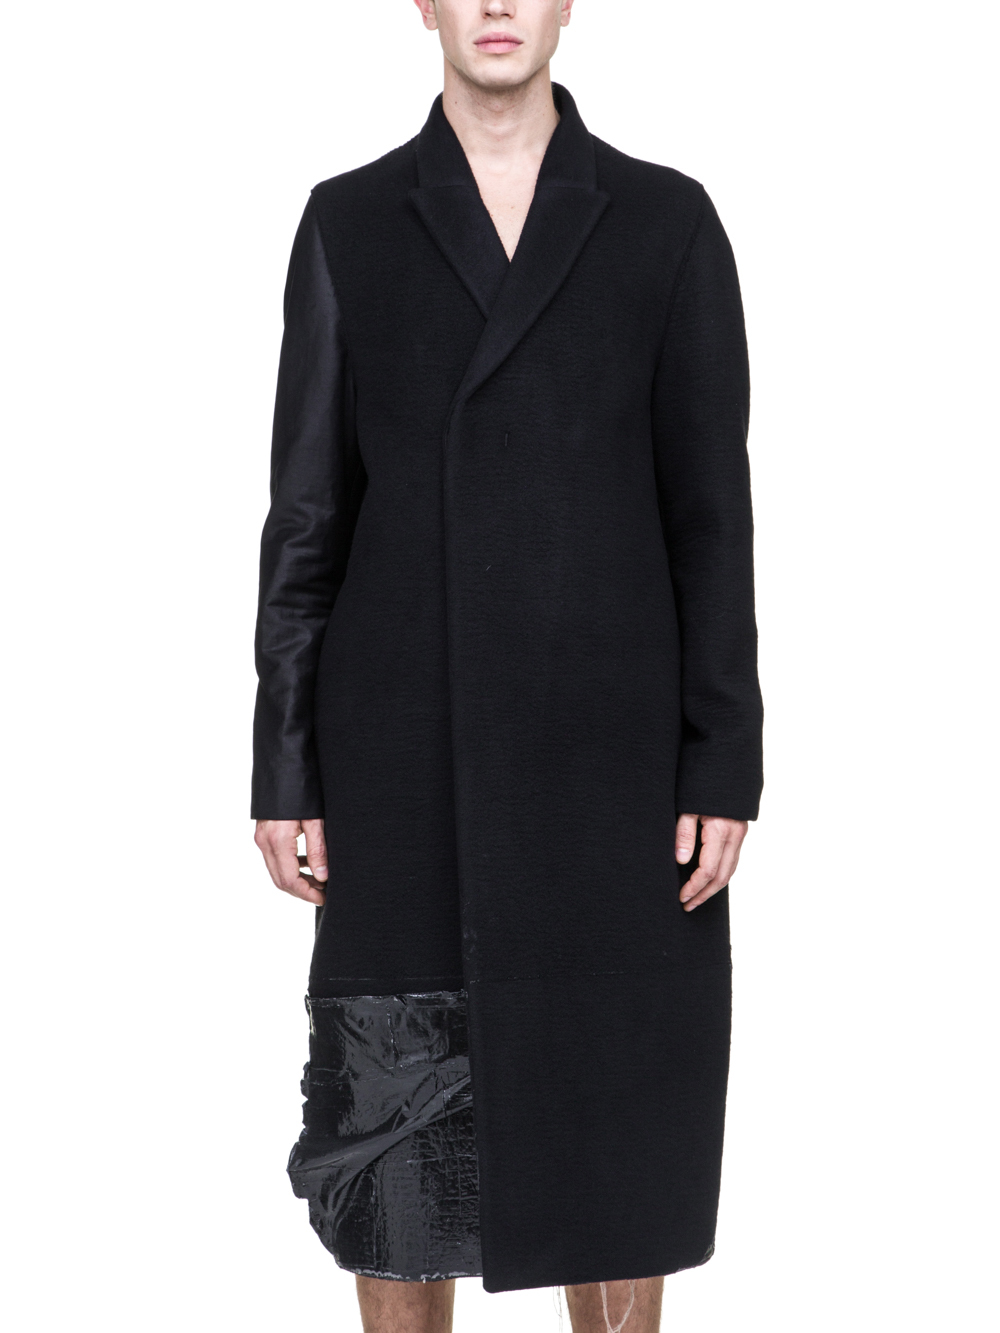 RICK OWENS OFF-THE-RUNWAY BELL COAT IN BLACK CASHMERE